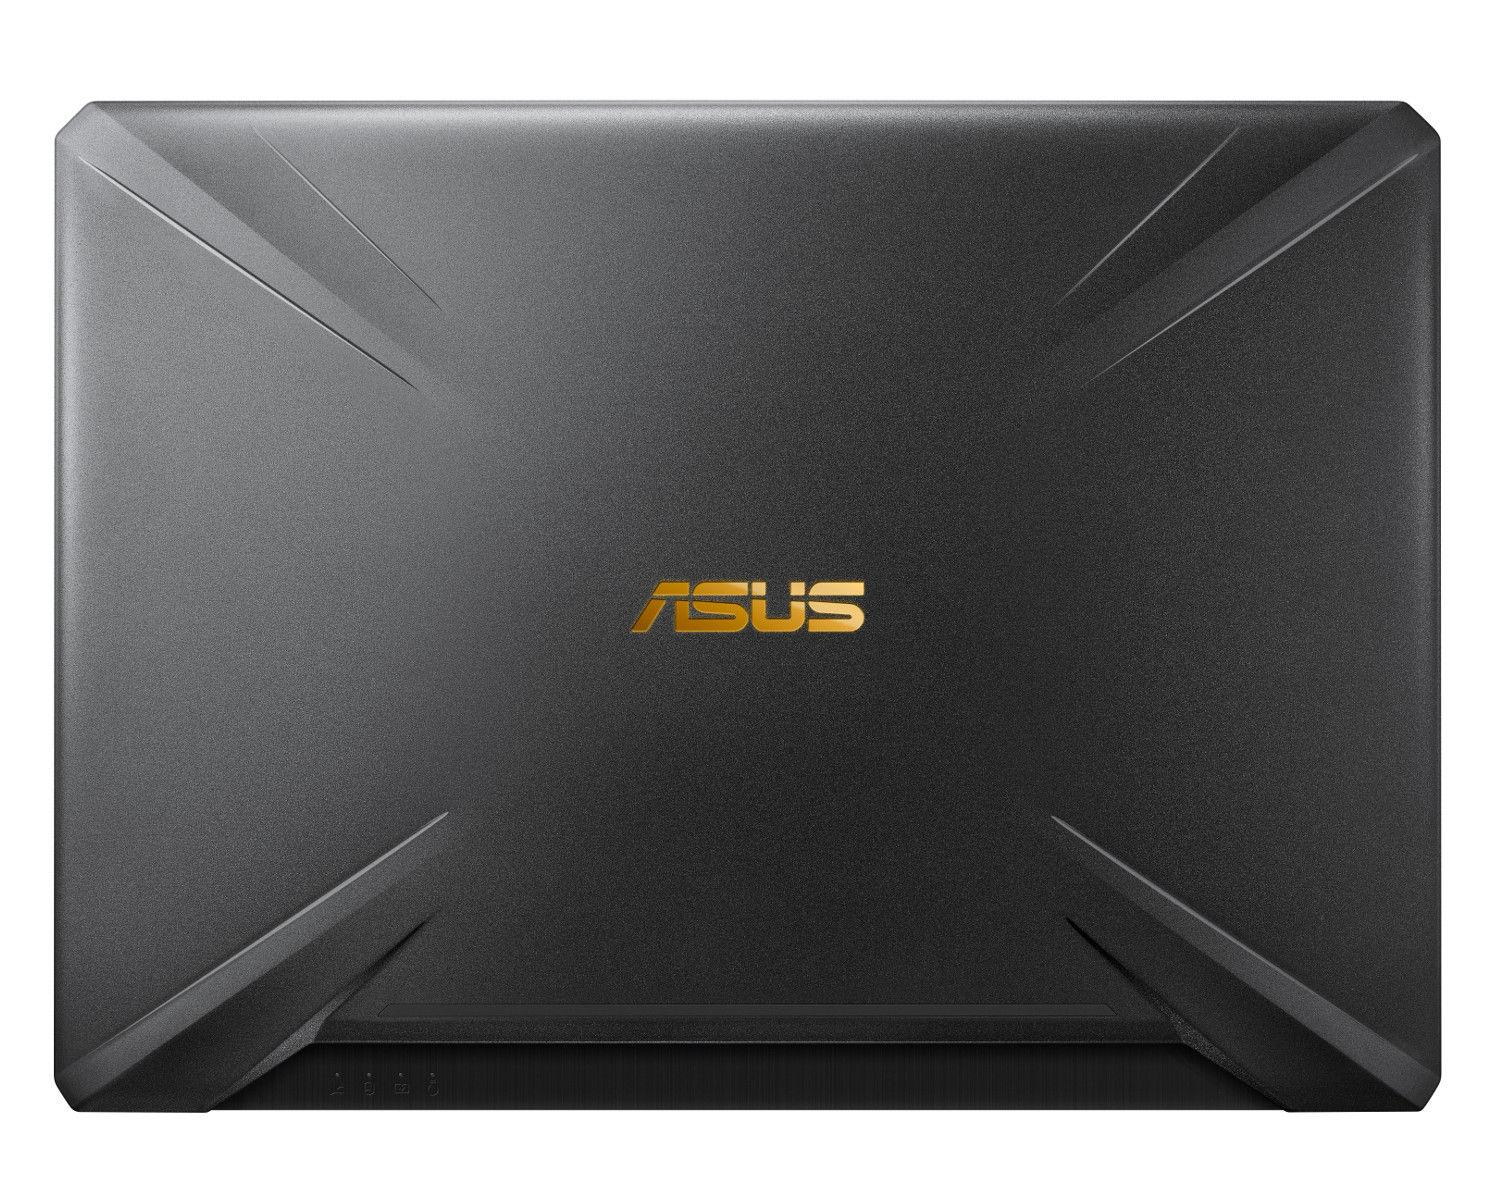 Ordinateur portable Asus TUF 565GE-AL352 Noir/Gold - IPS 120Hz, GTX 1050 Ti, Sans Windows - photo 8